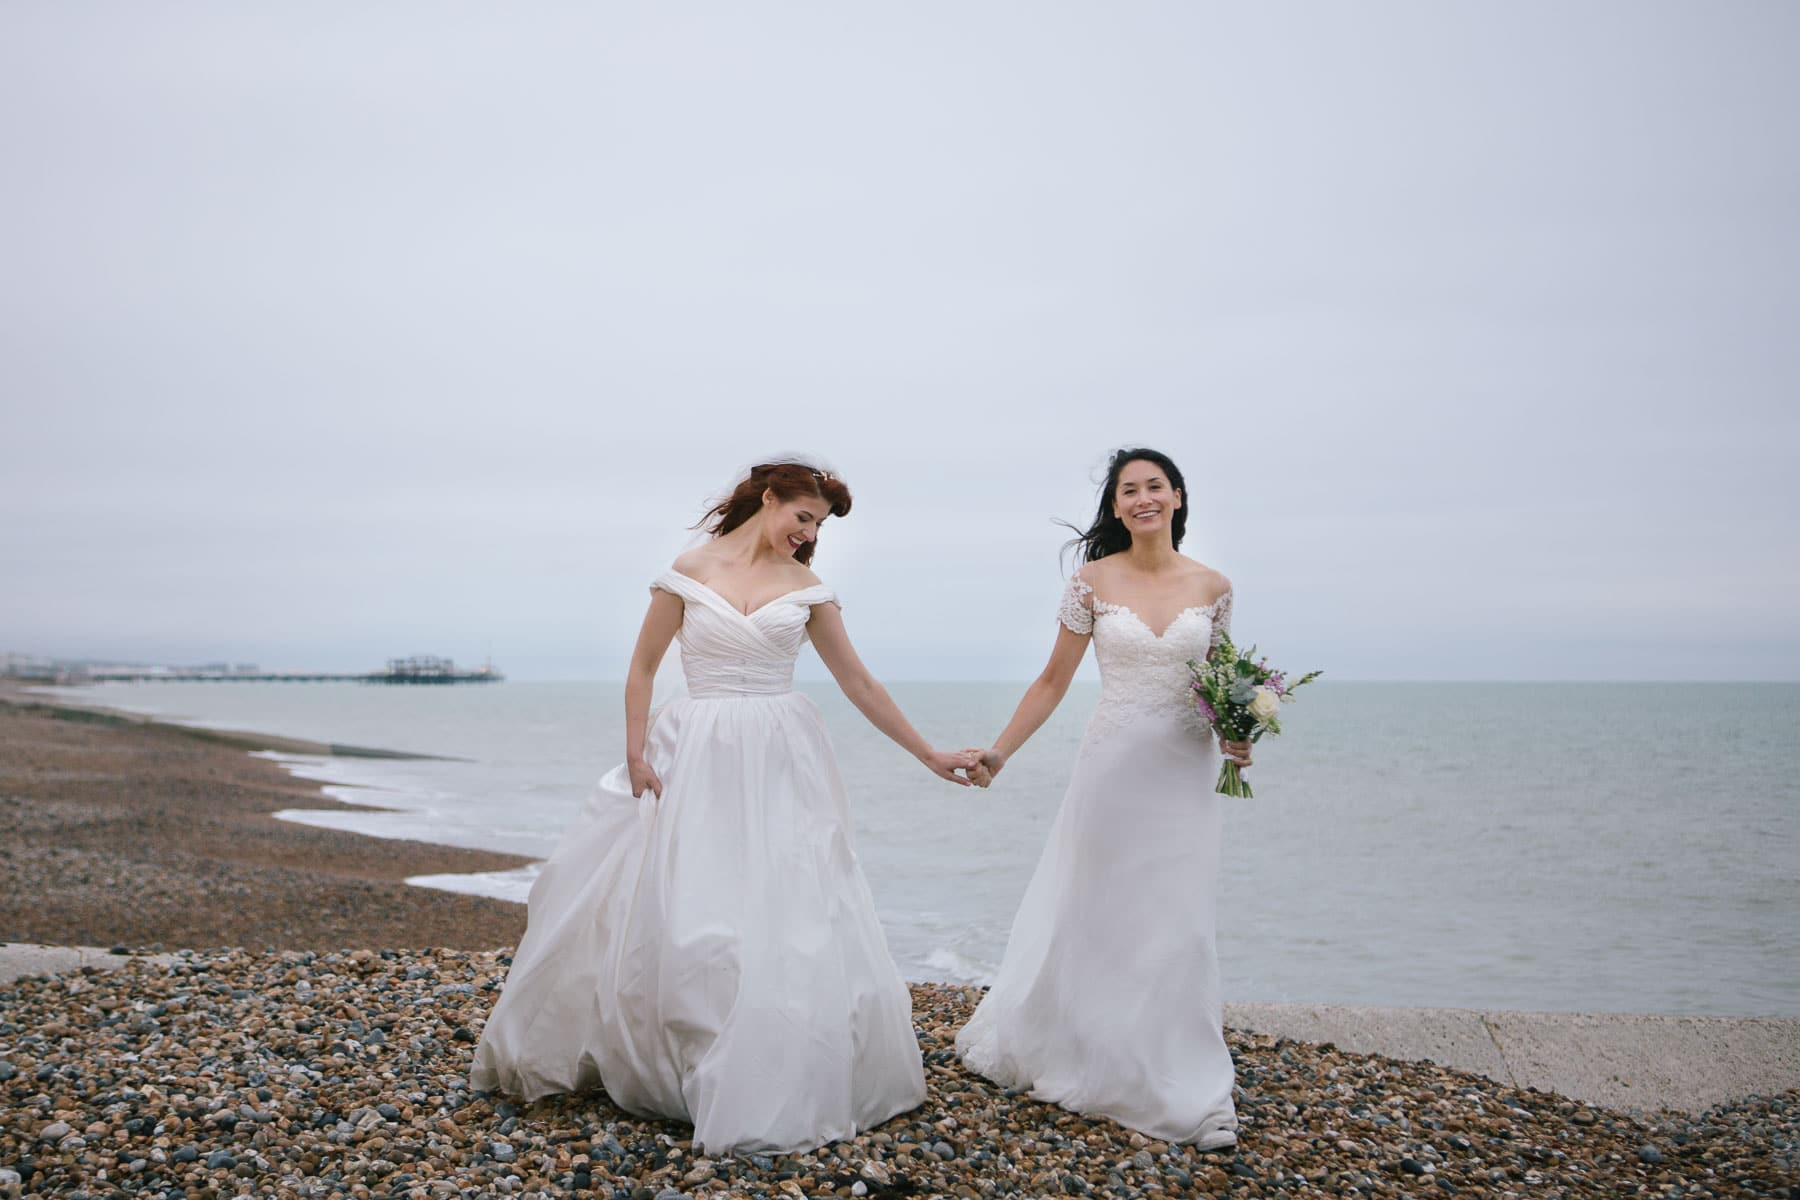 lesbian brides in on Brighton Beach holding hands